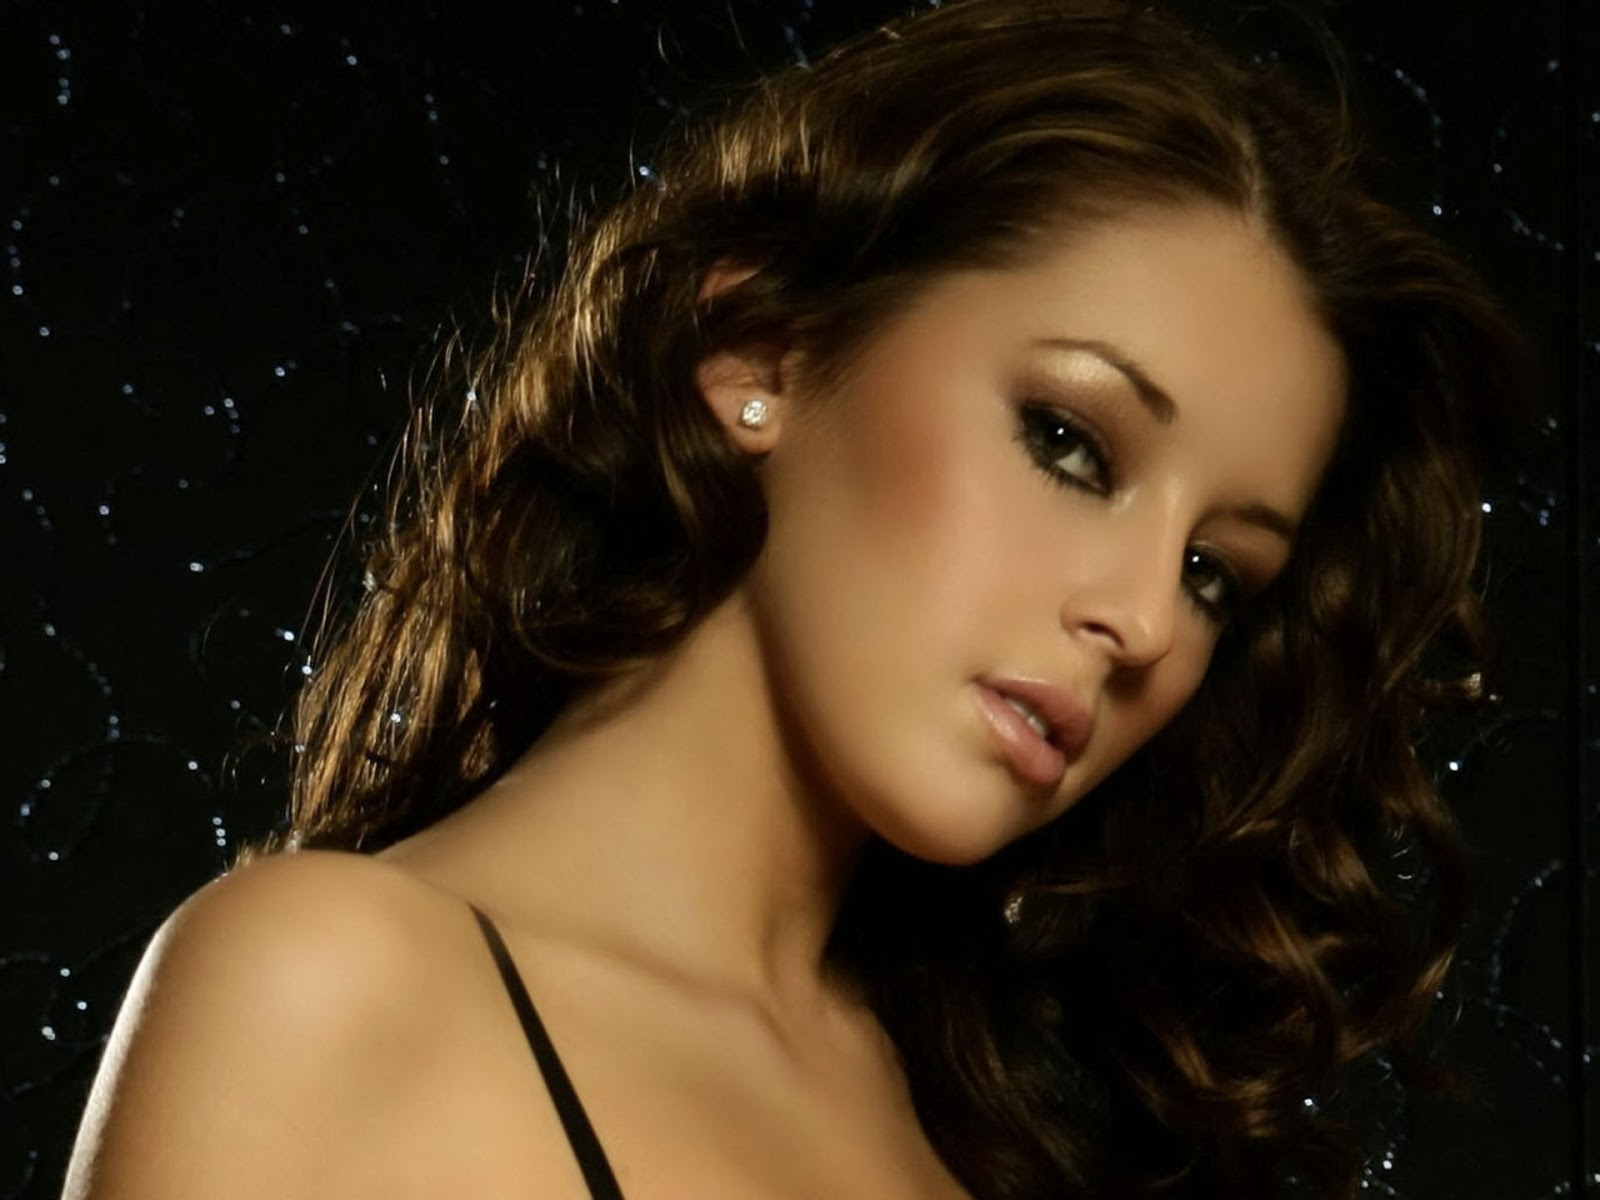 keeley hazell downloads backgrounds - photo #10